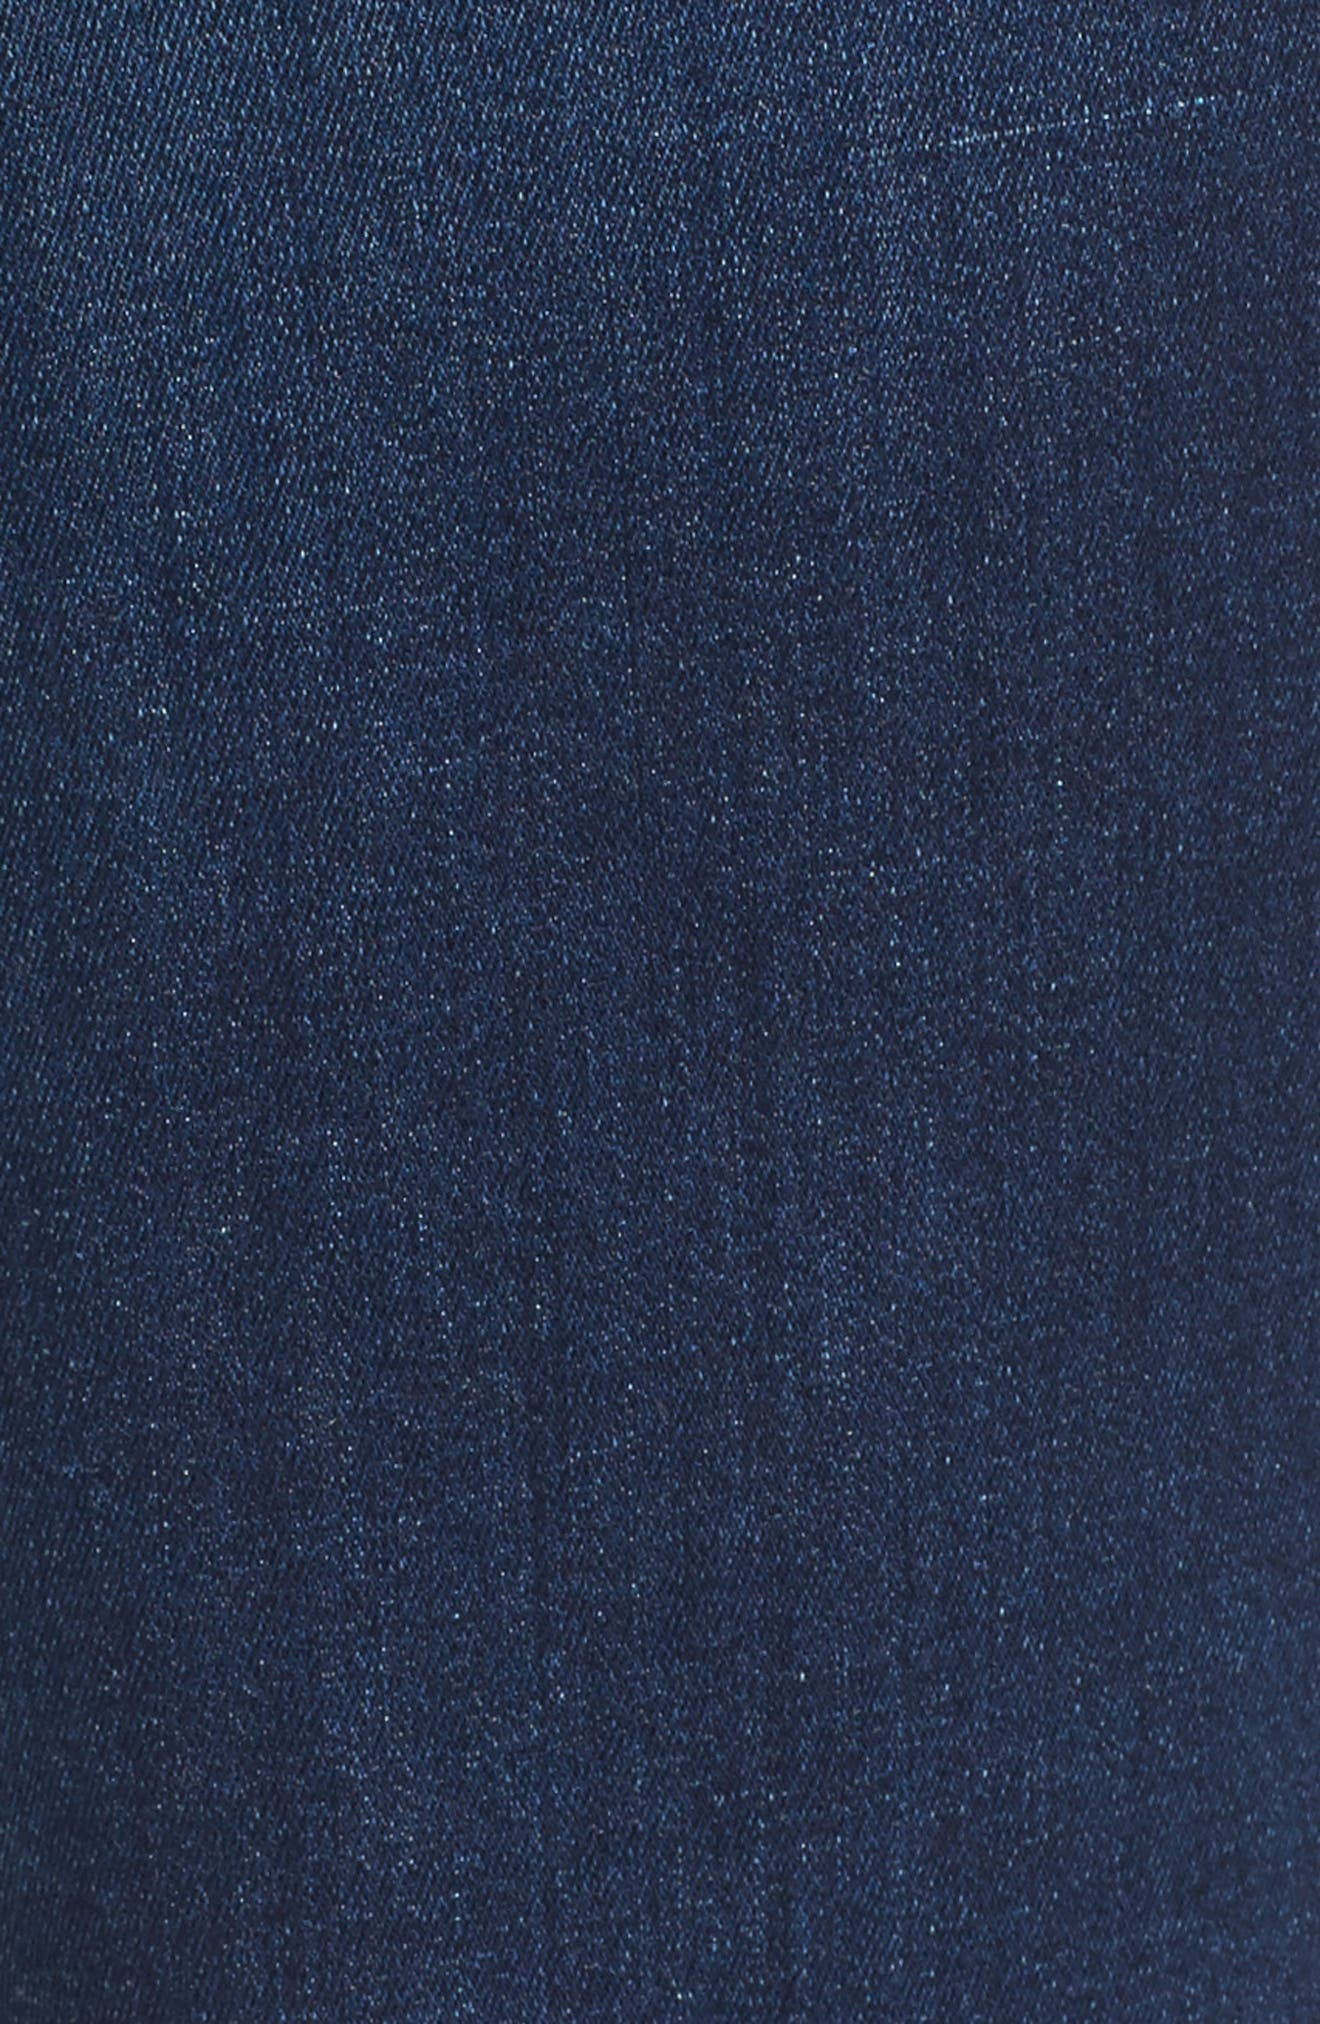 JEN7 BY 7 FOR ALL MANKIND, Slim Bootcut Jeans, Alternate thumbnail 5, color, RICHE TOUCH MEDIUM BLUE